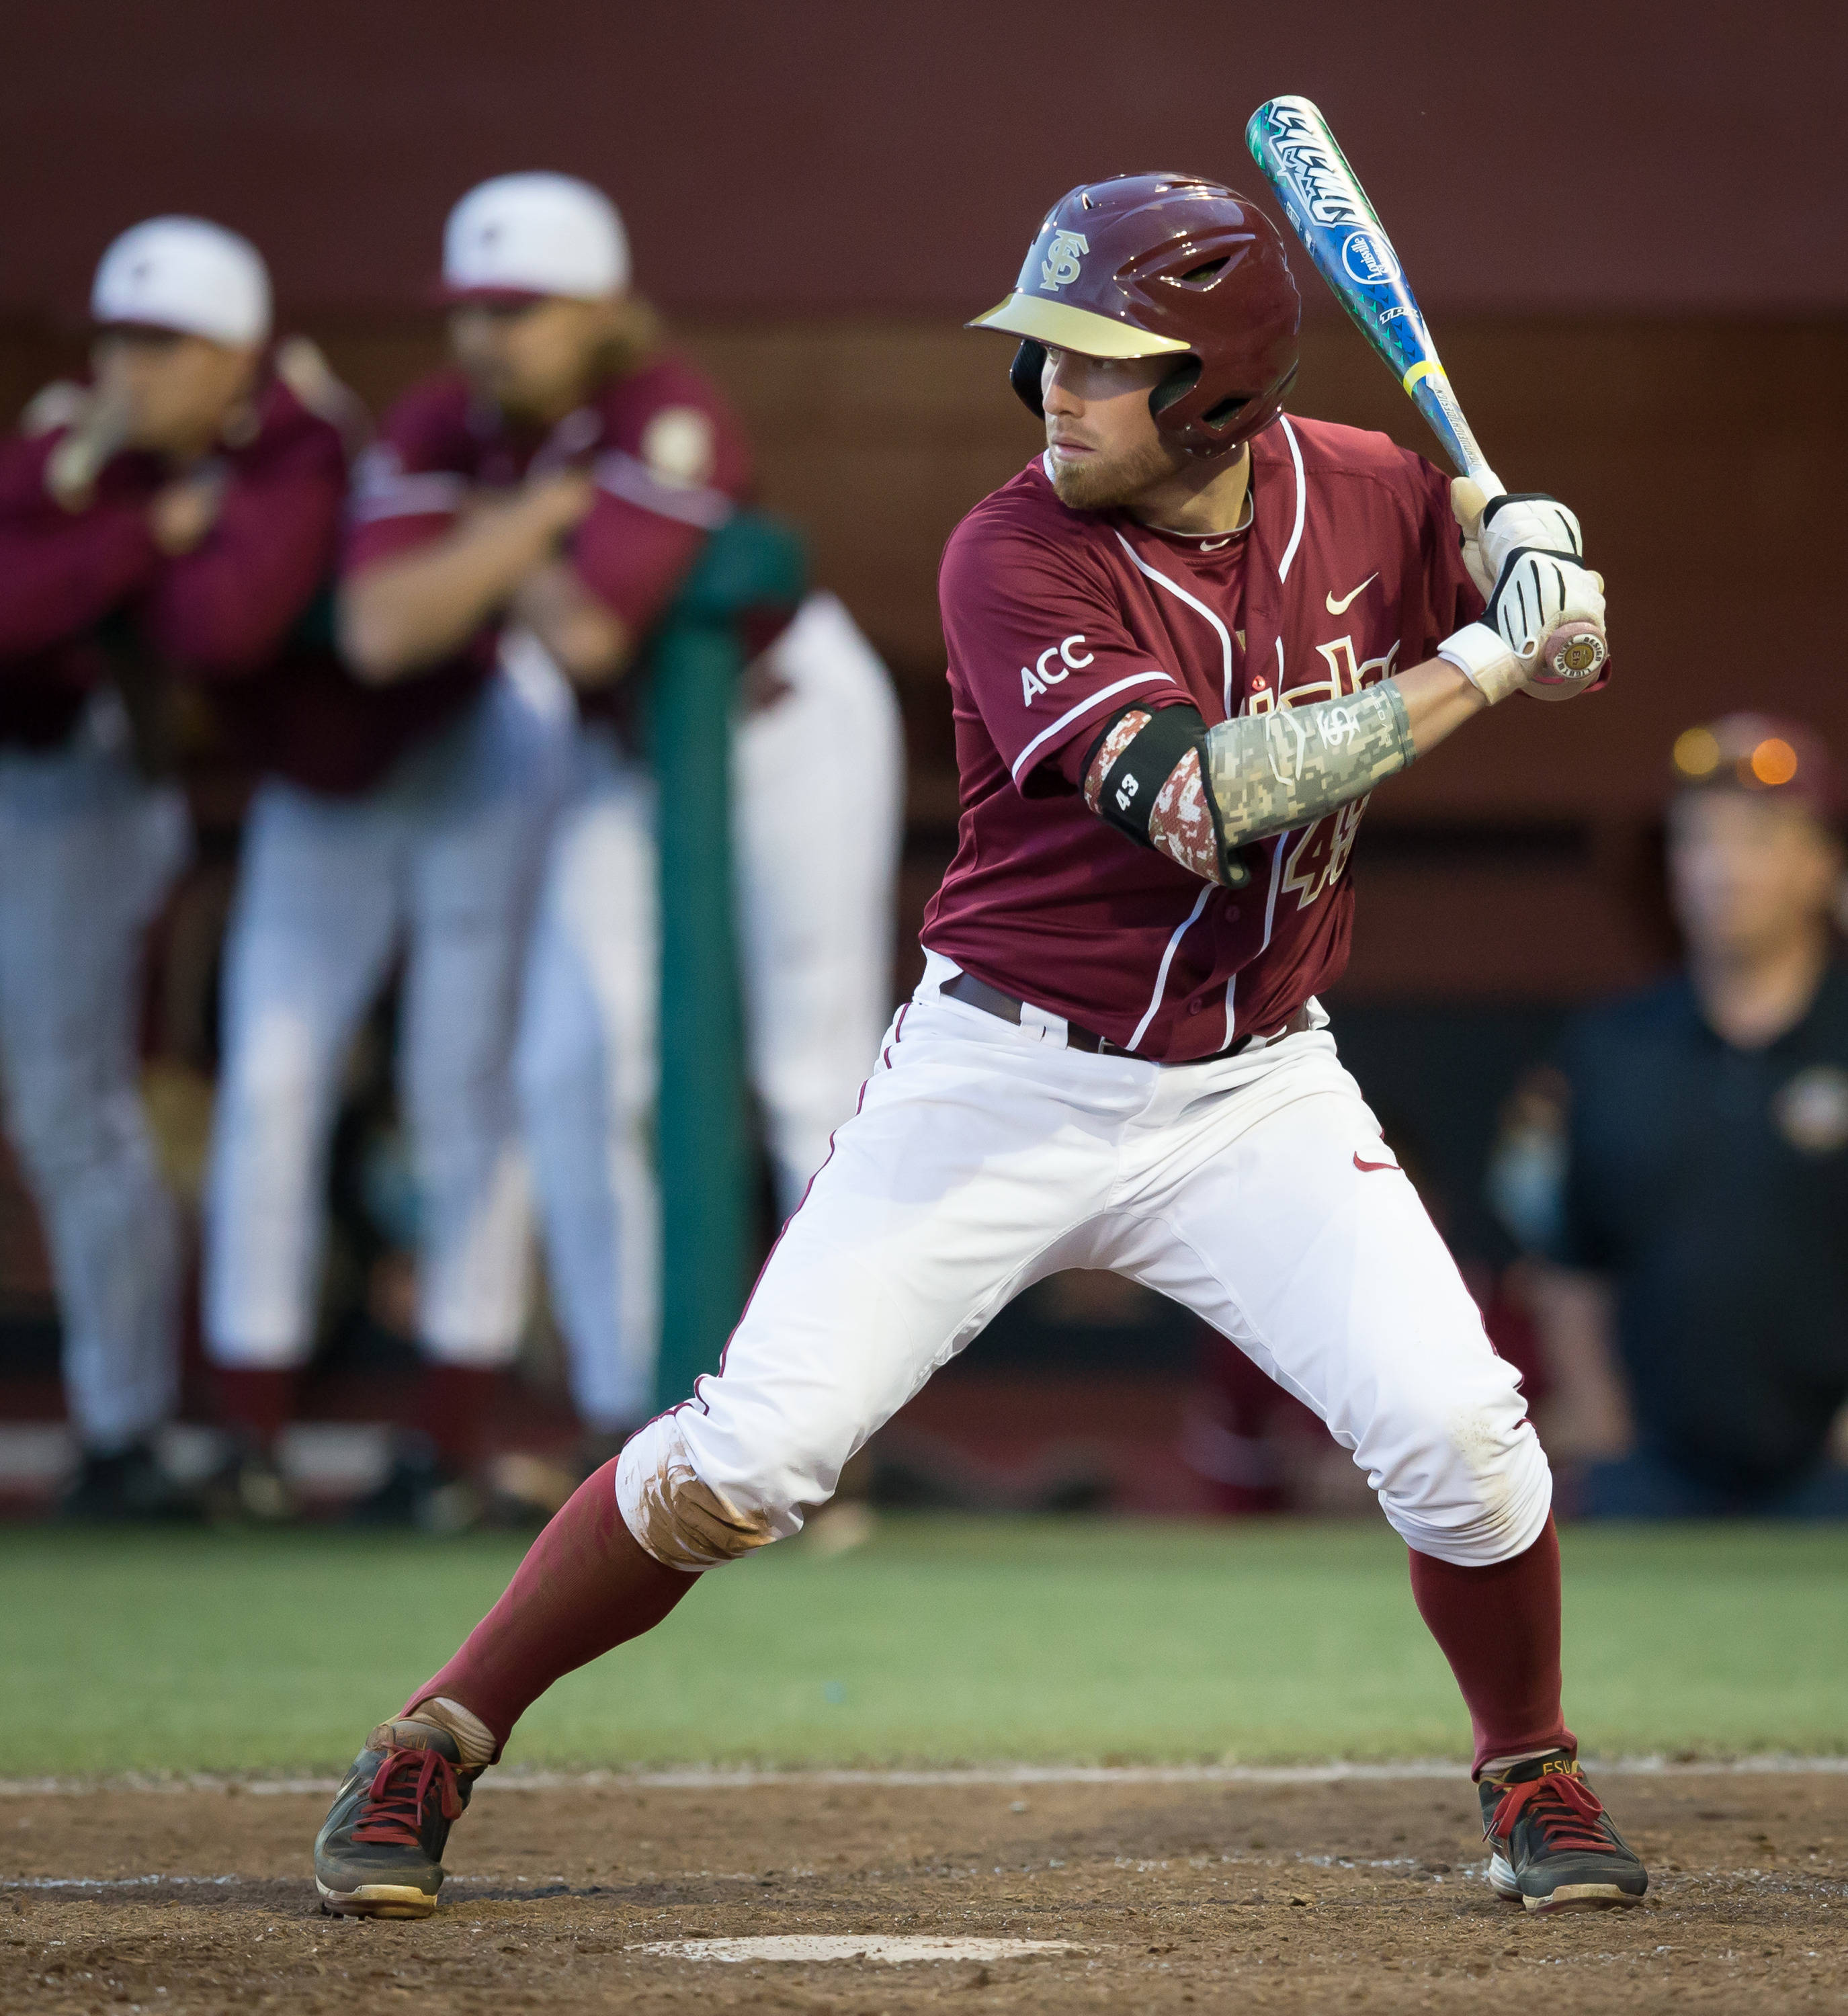 Casey Smit (43) connected for 2 of FSU's hits.